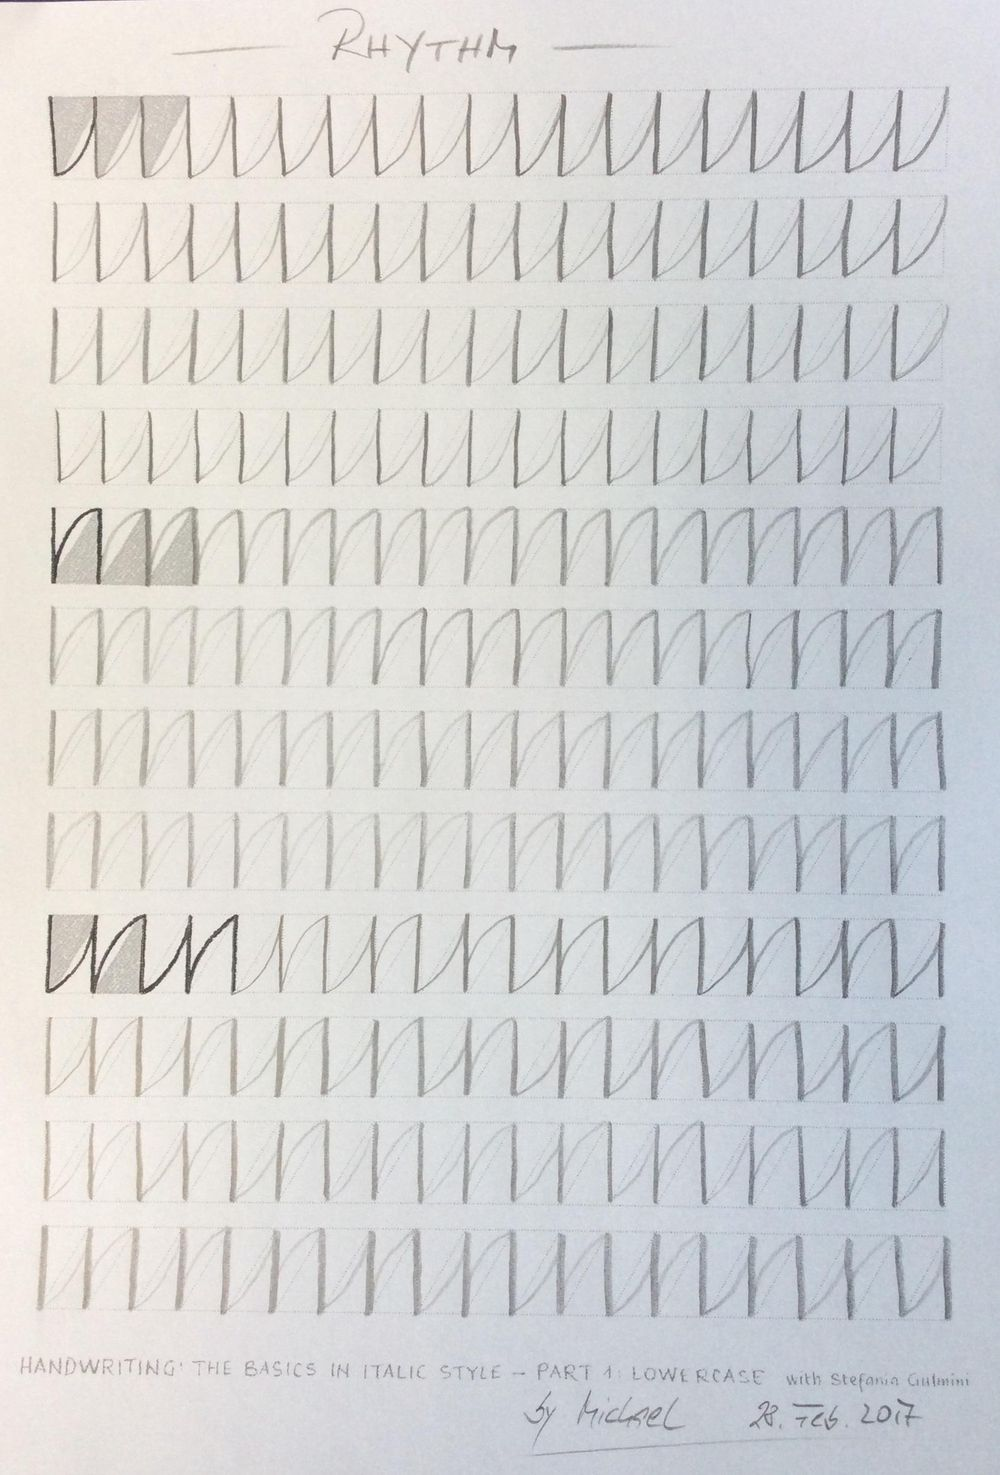 Michael´s Assignments (1. Current Handwritung / 2. Rhythm) - image 2 - student project